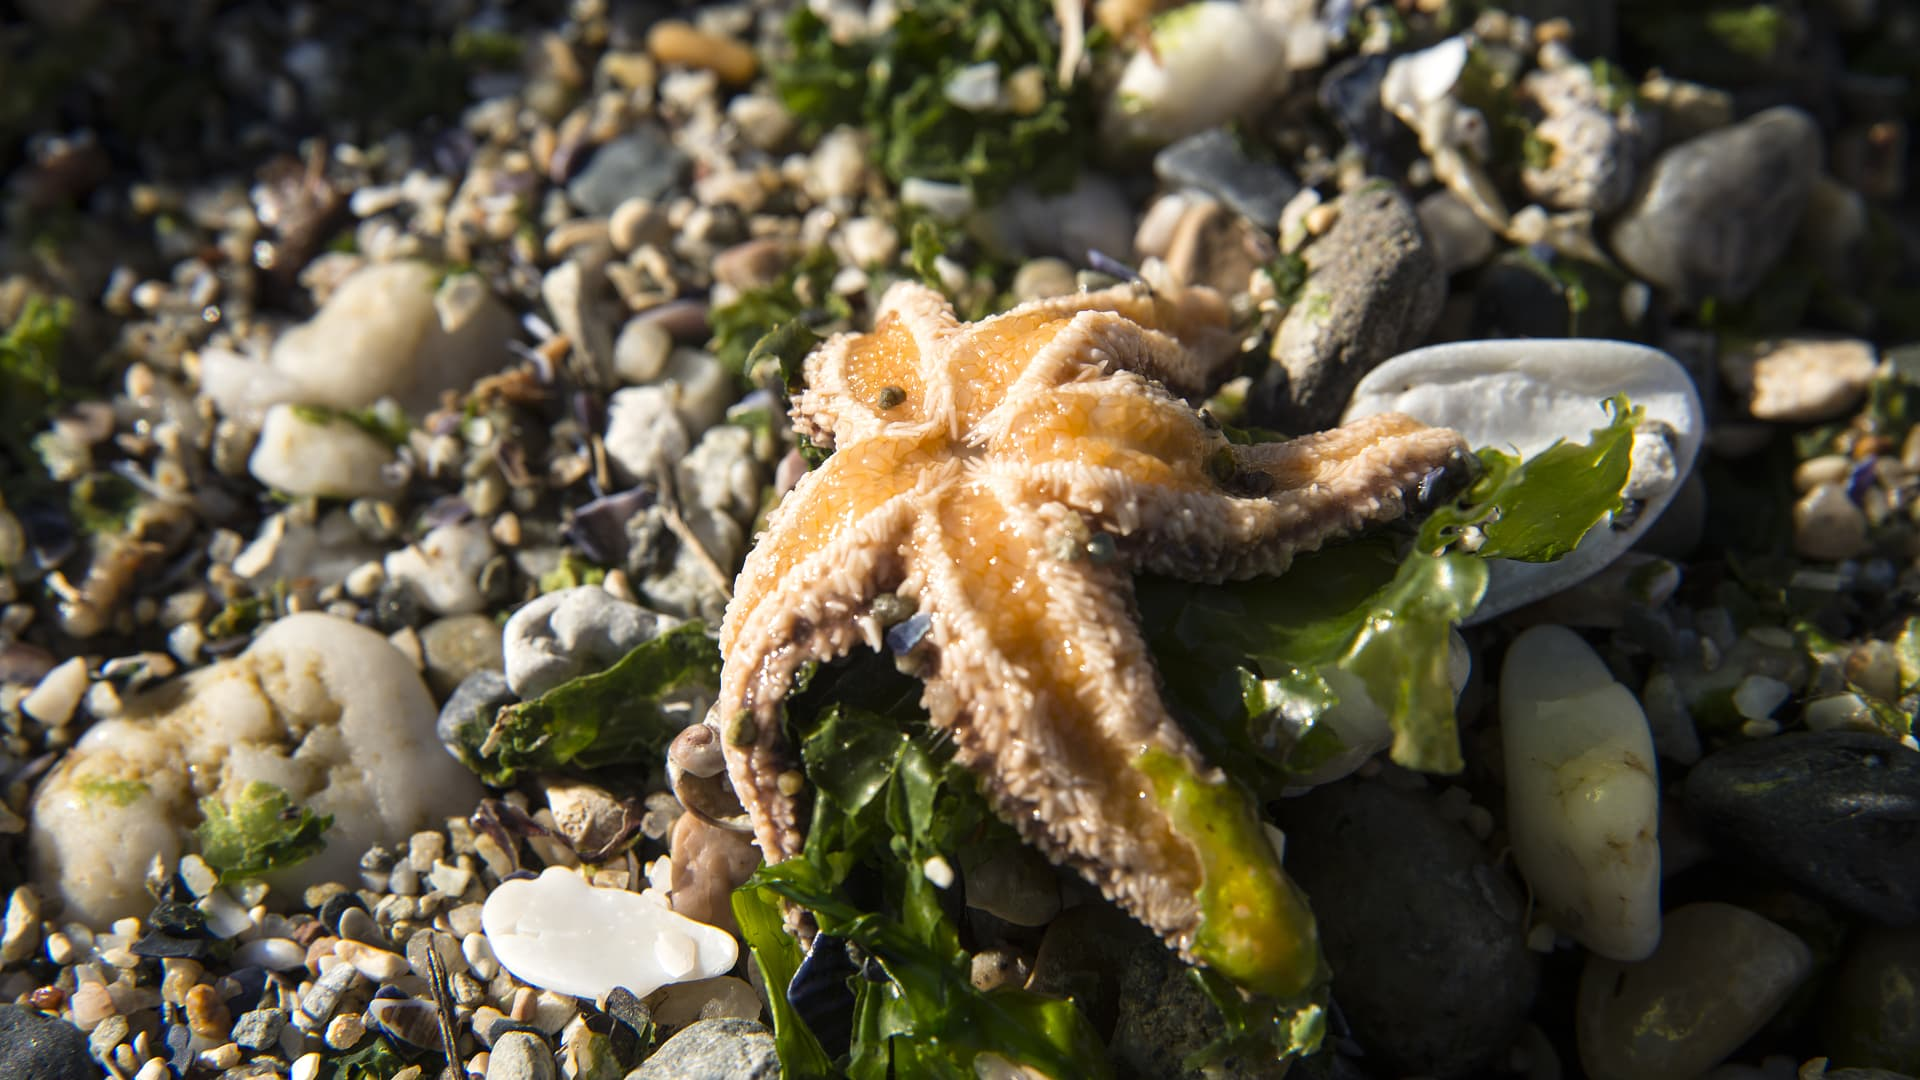 Bacteria and excessive fertilization turn the starfish into a sticky substance